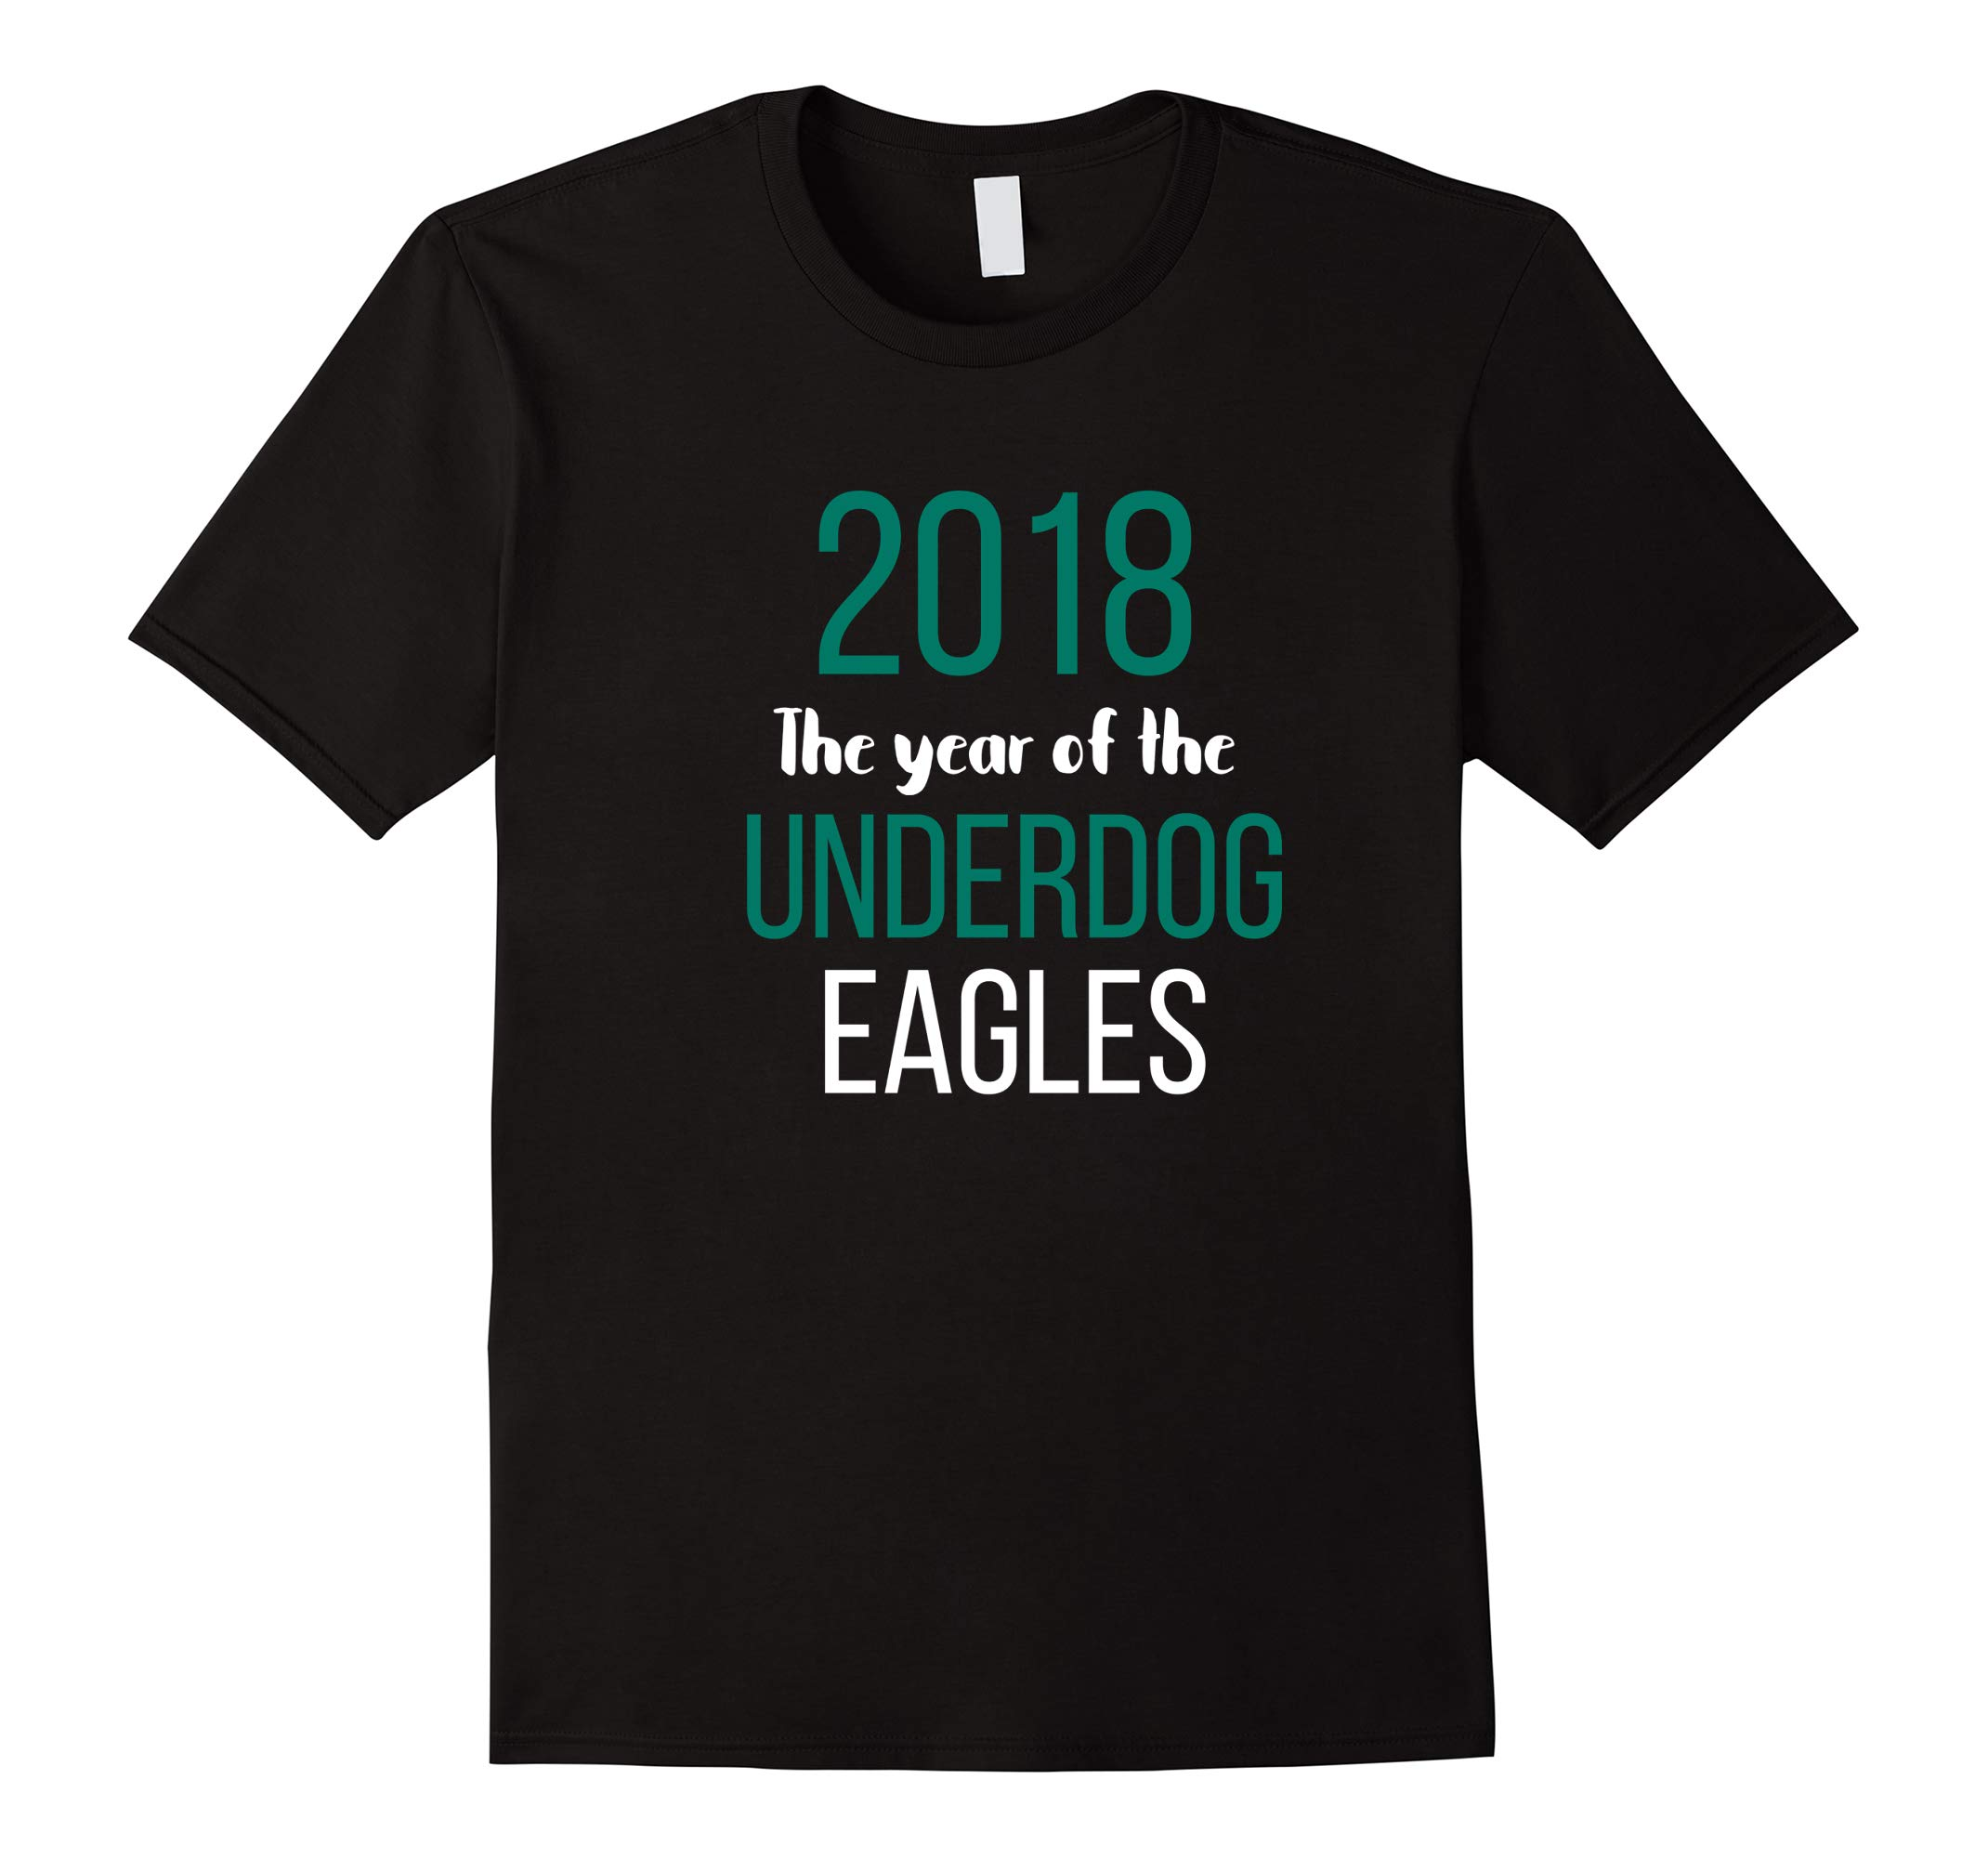 2018 The year of the Underdog Eagles Tee Shirt-RT